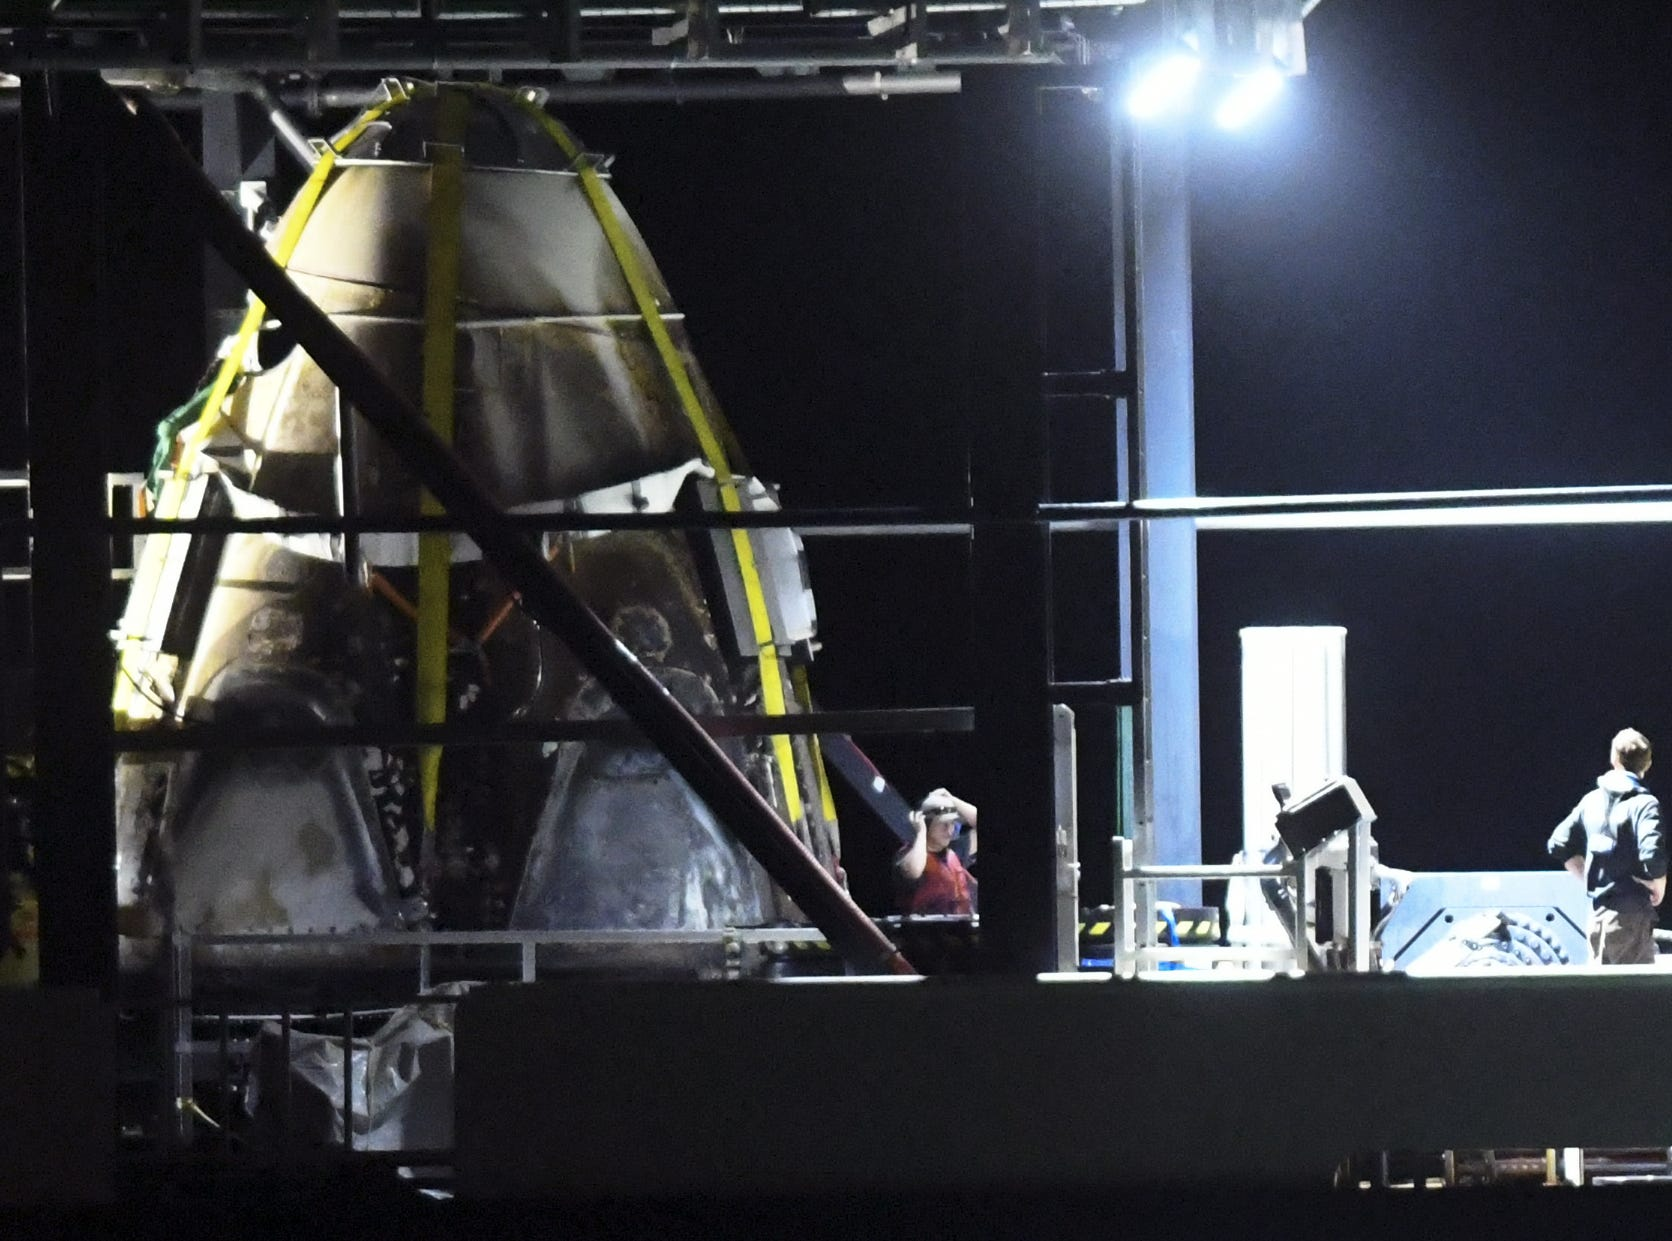 The SpaceX Crew Dragon capsule aboard the support ship Go Searcher, returns to Port Canaveral Saturday evening, March 9, 2019.  The capsule, launched aboard a Falcon 9 rocket last week, made a trip to the International Space Station before returning to Earth.